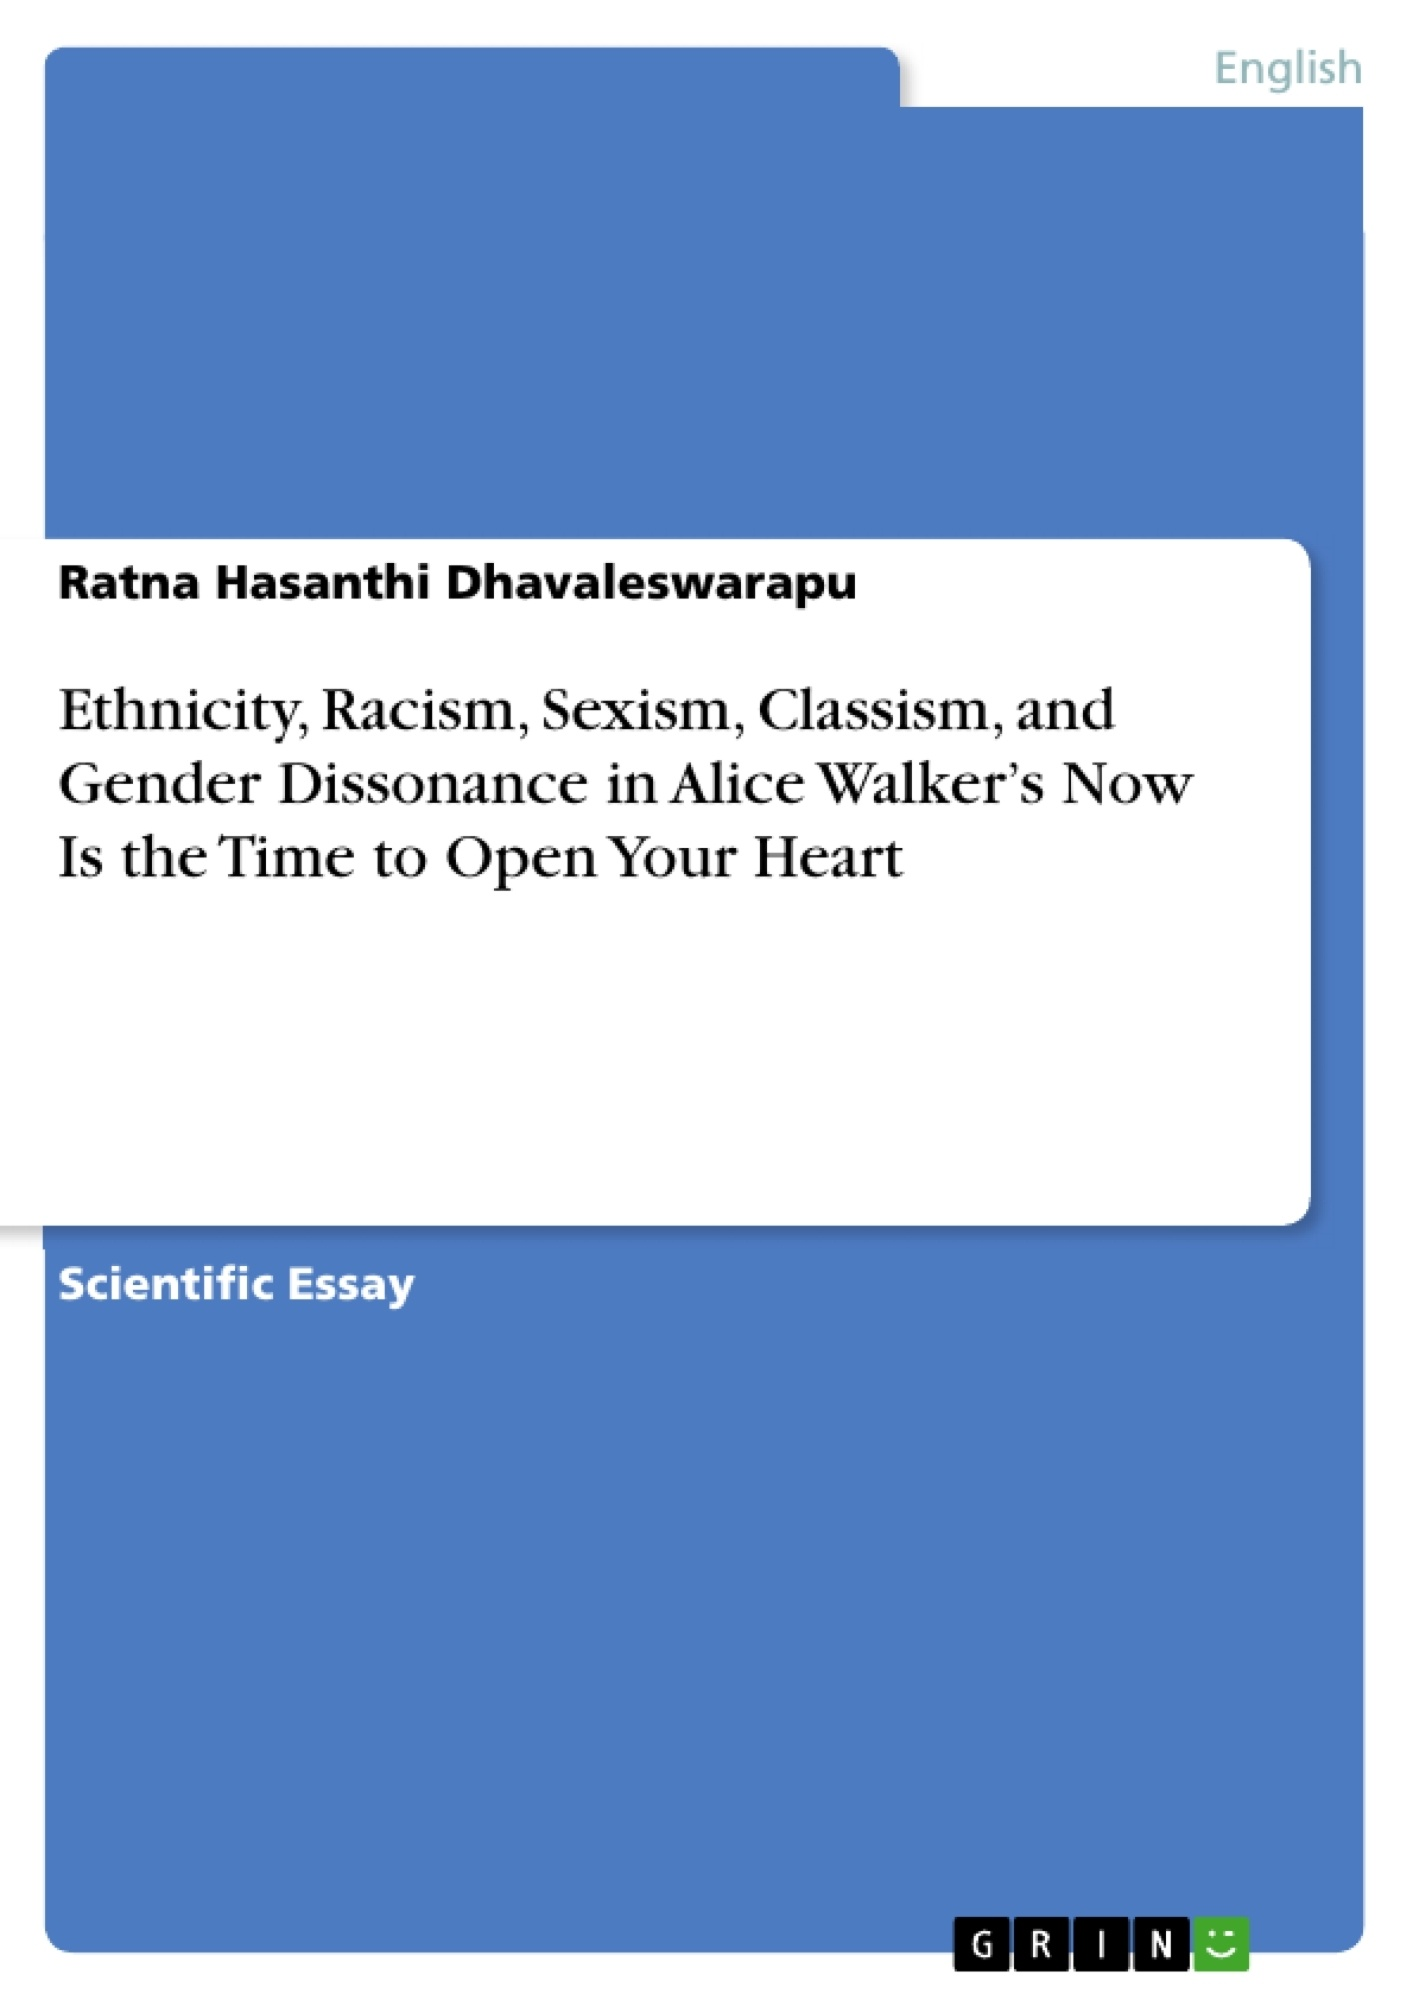 Title: Ethnicity, Racism, Sexism, Classism, and Gender Dissonance in Alice Walker's Now Is the Time to Open Your Heart